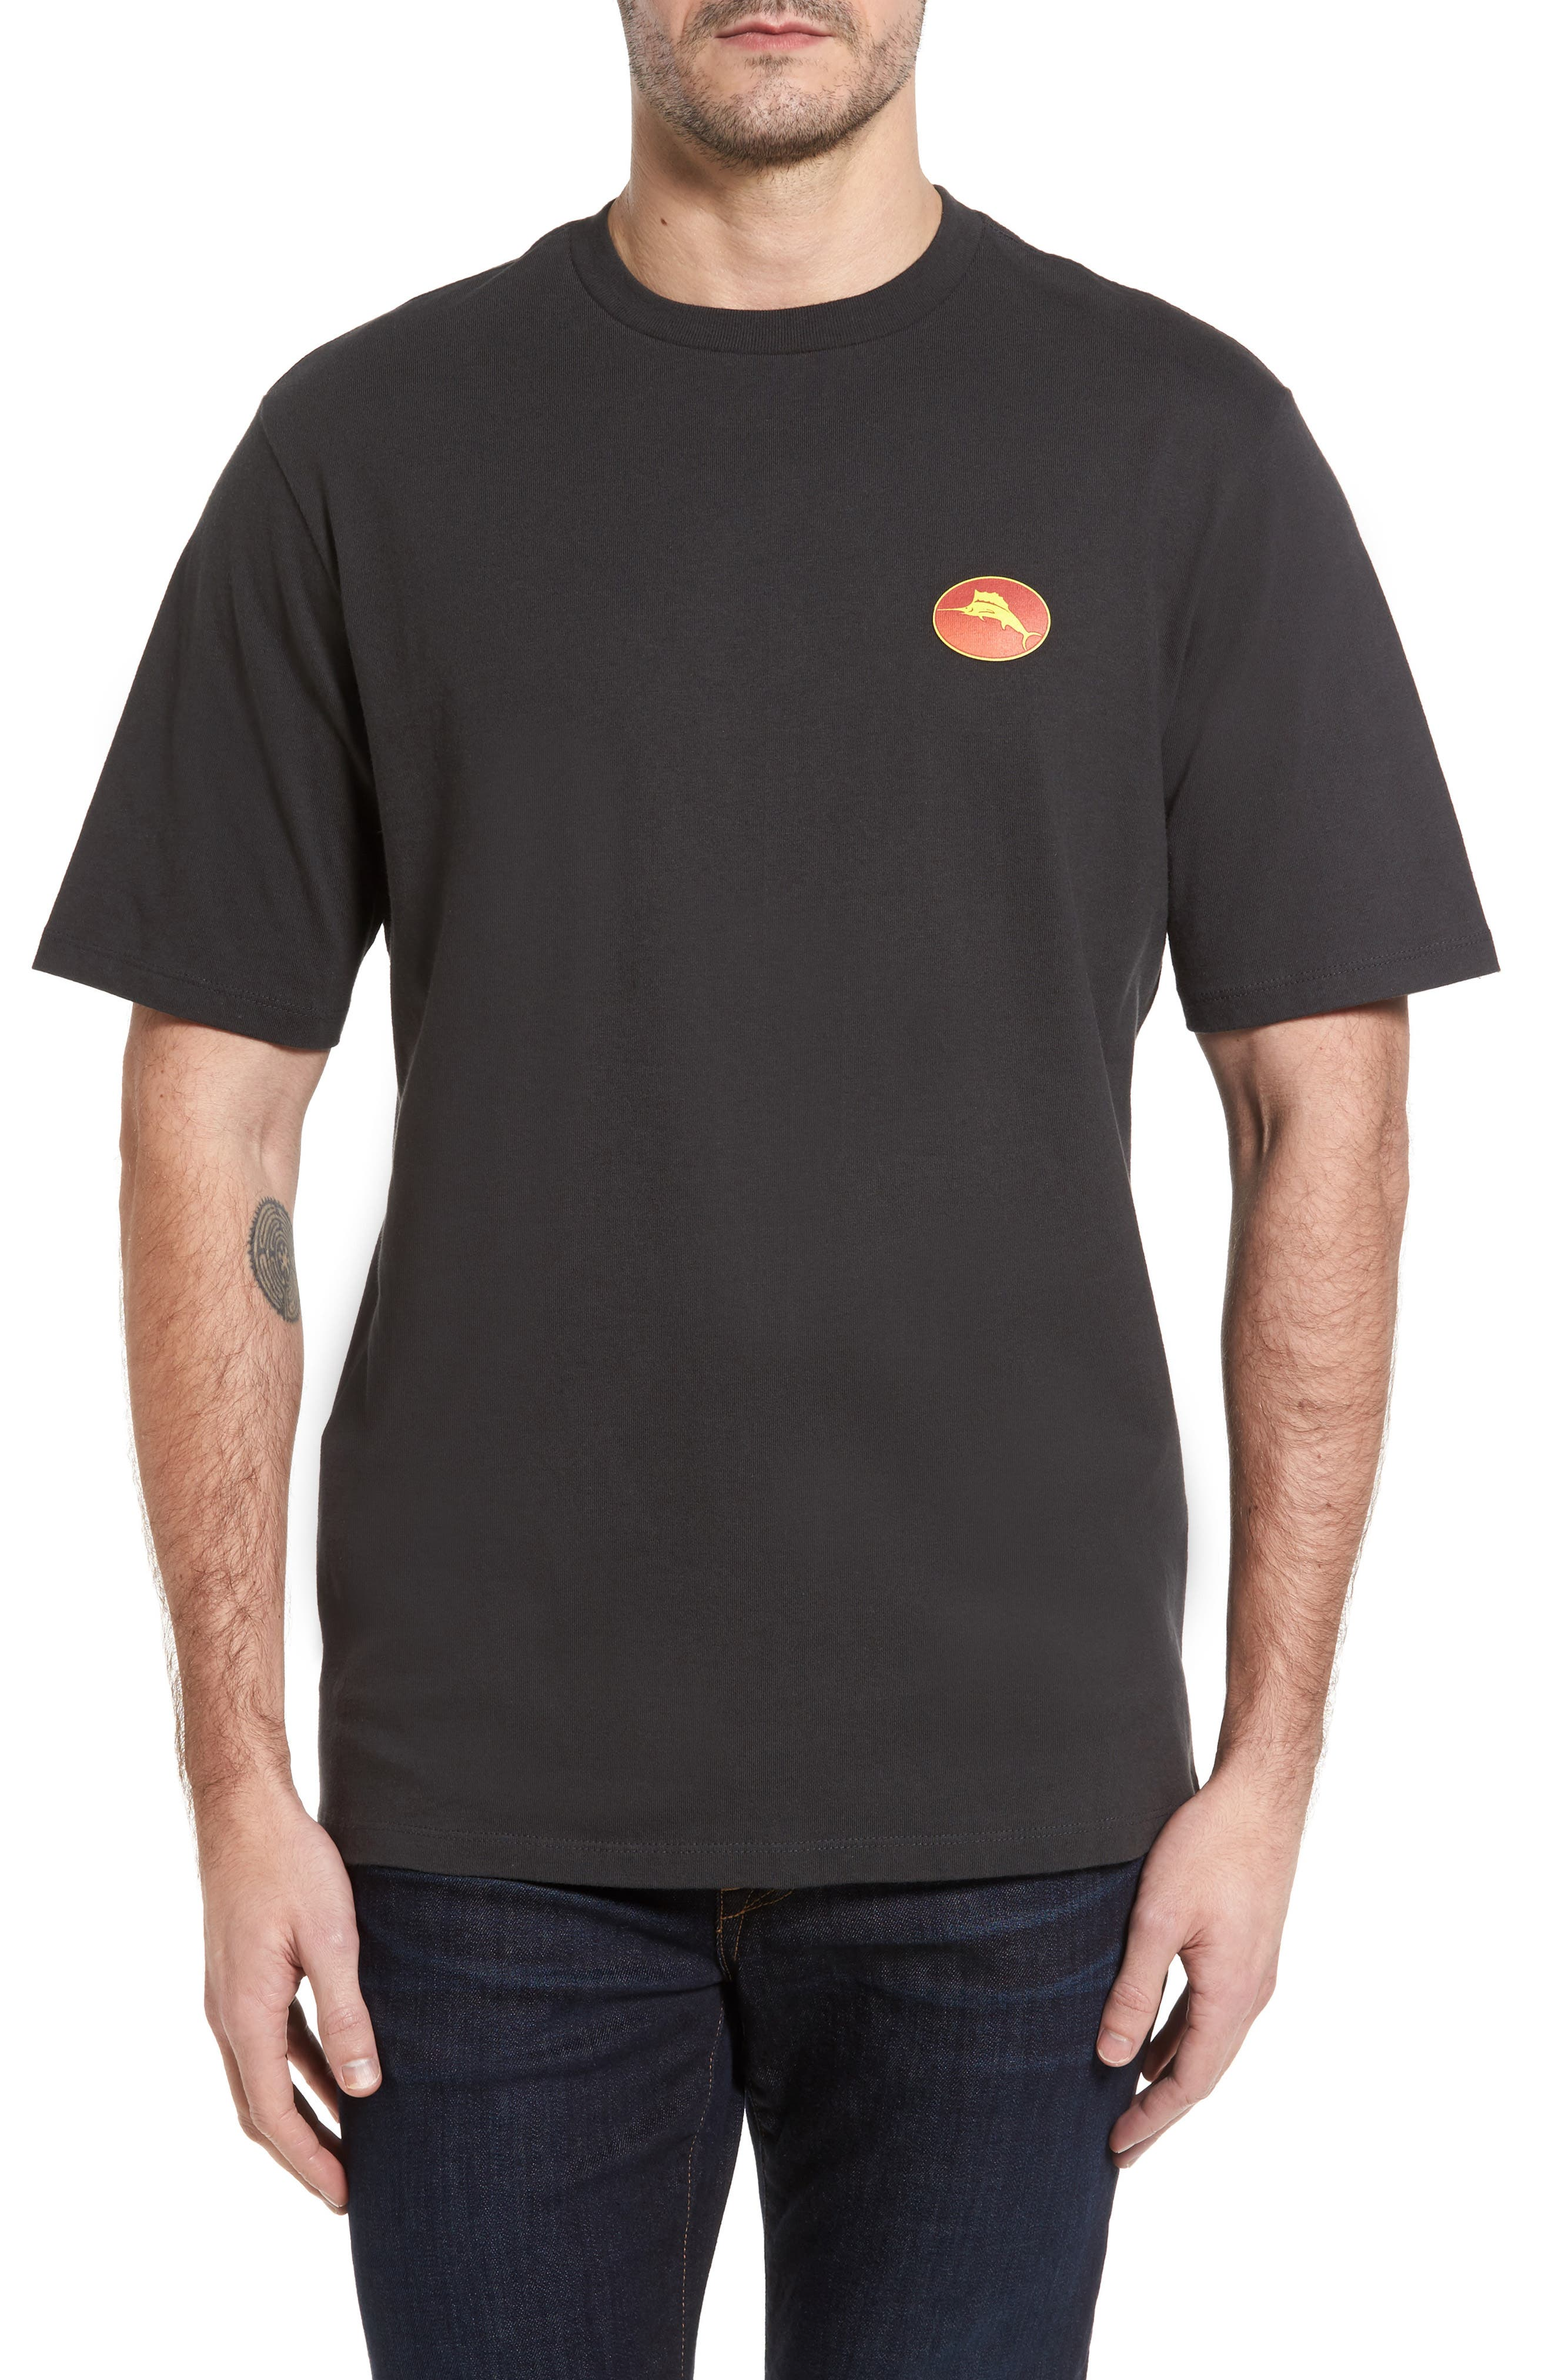 Flame & Fortune T-Shirt,                         Main,                         color, Coal